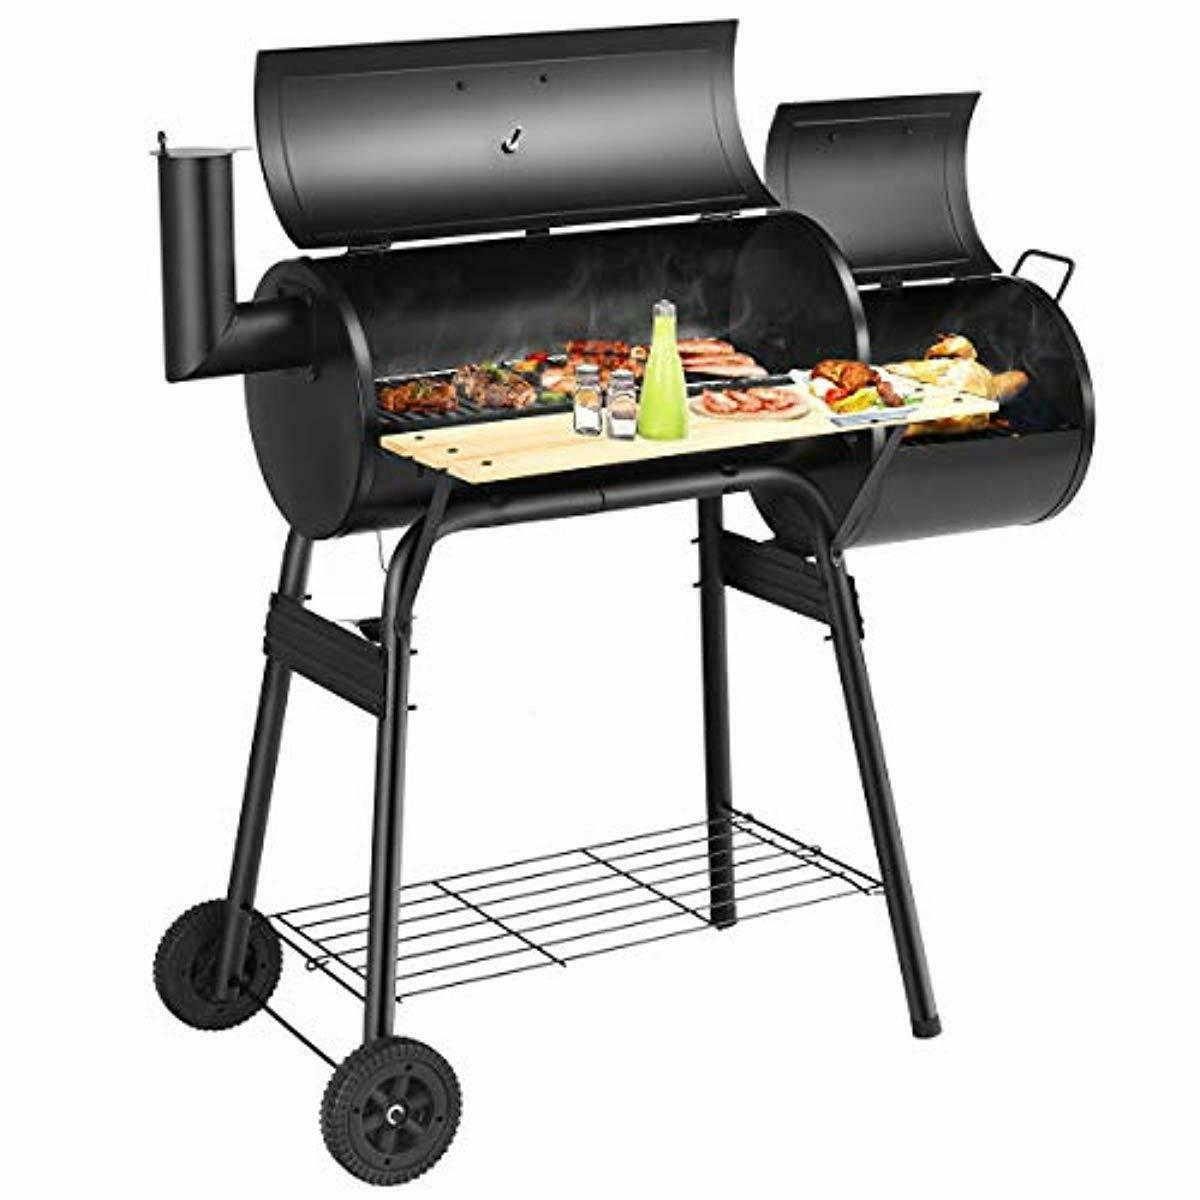 bbq grill charcoal barbecue grill outdoor pit